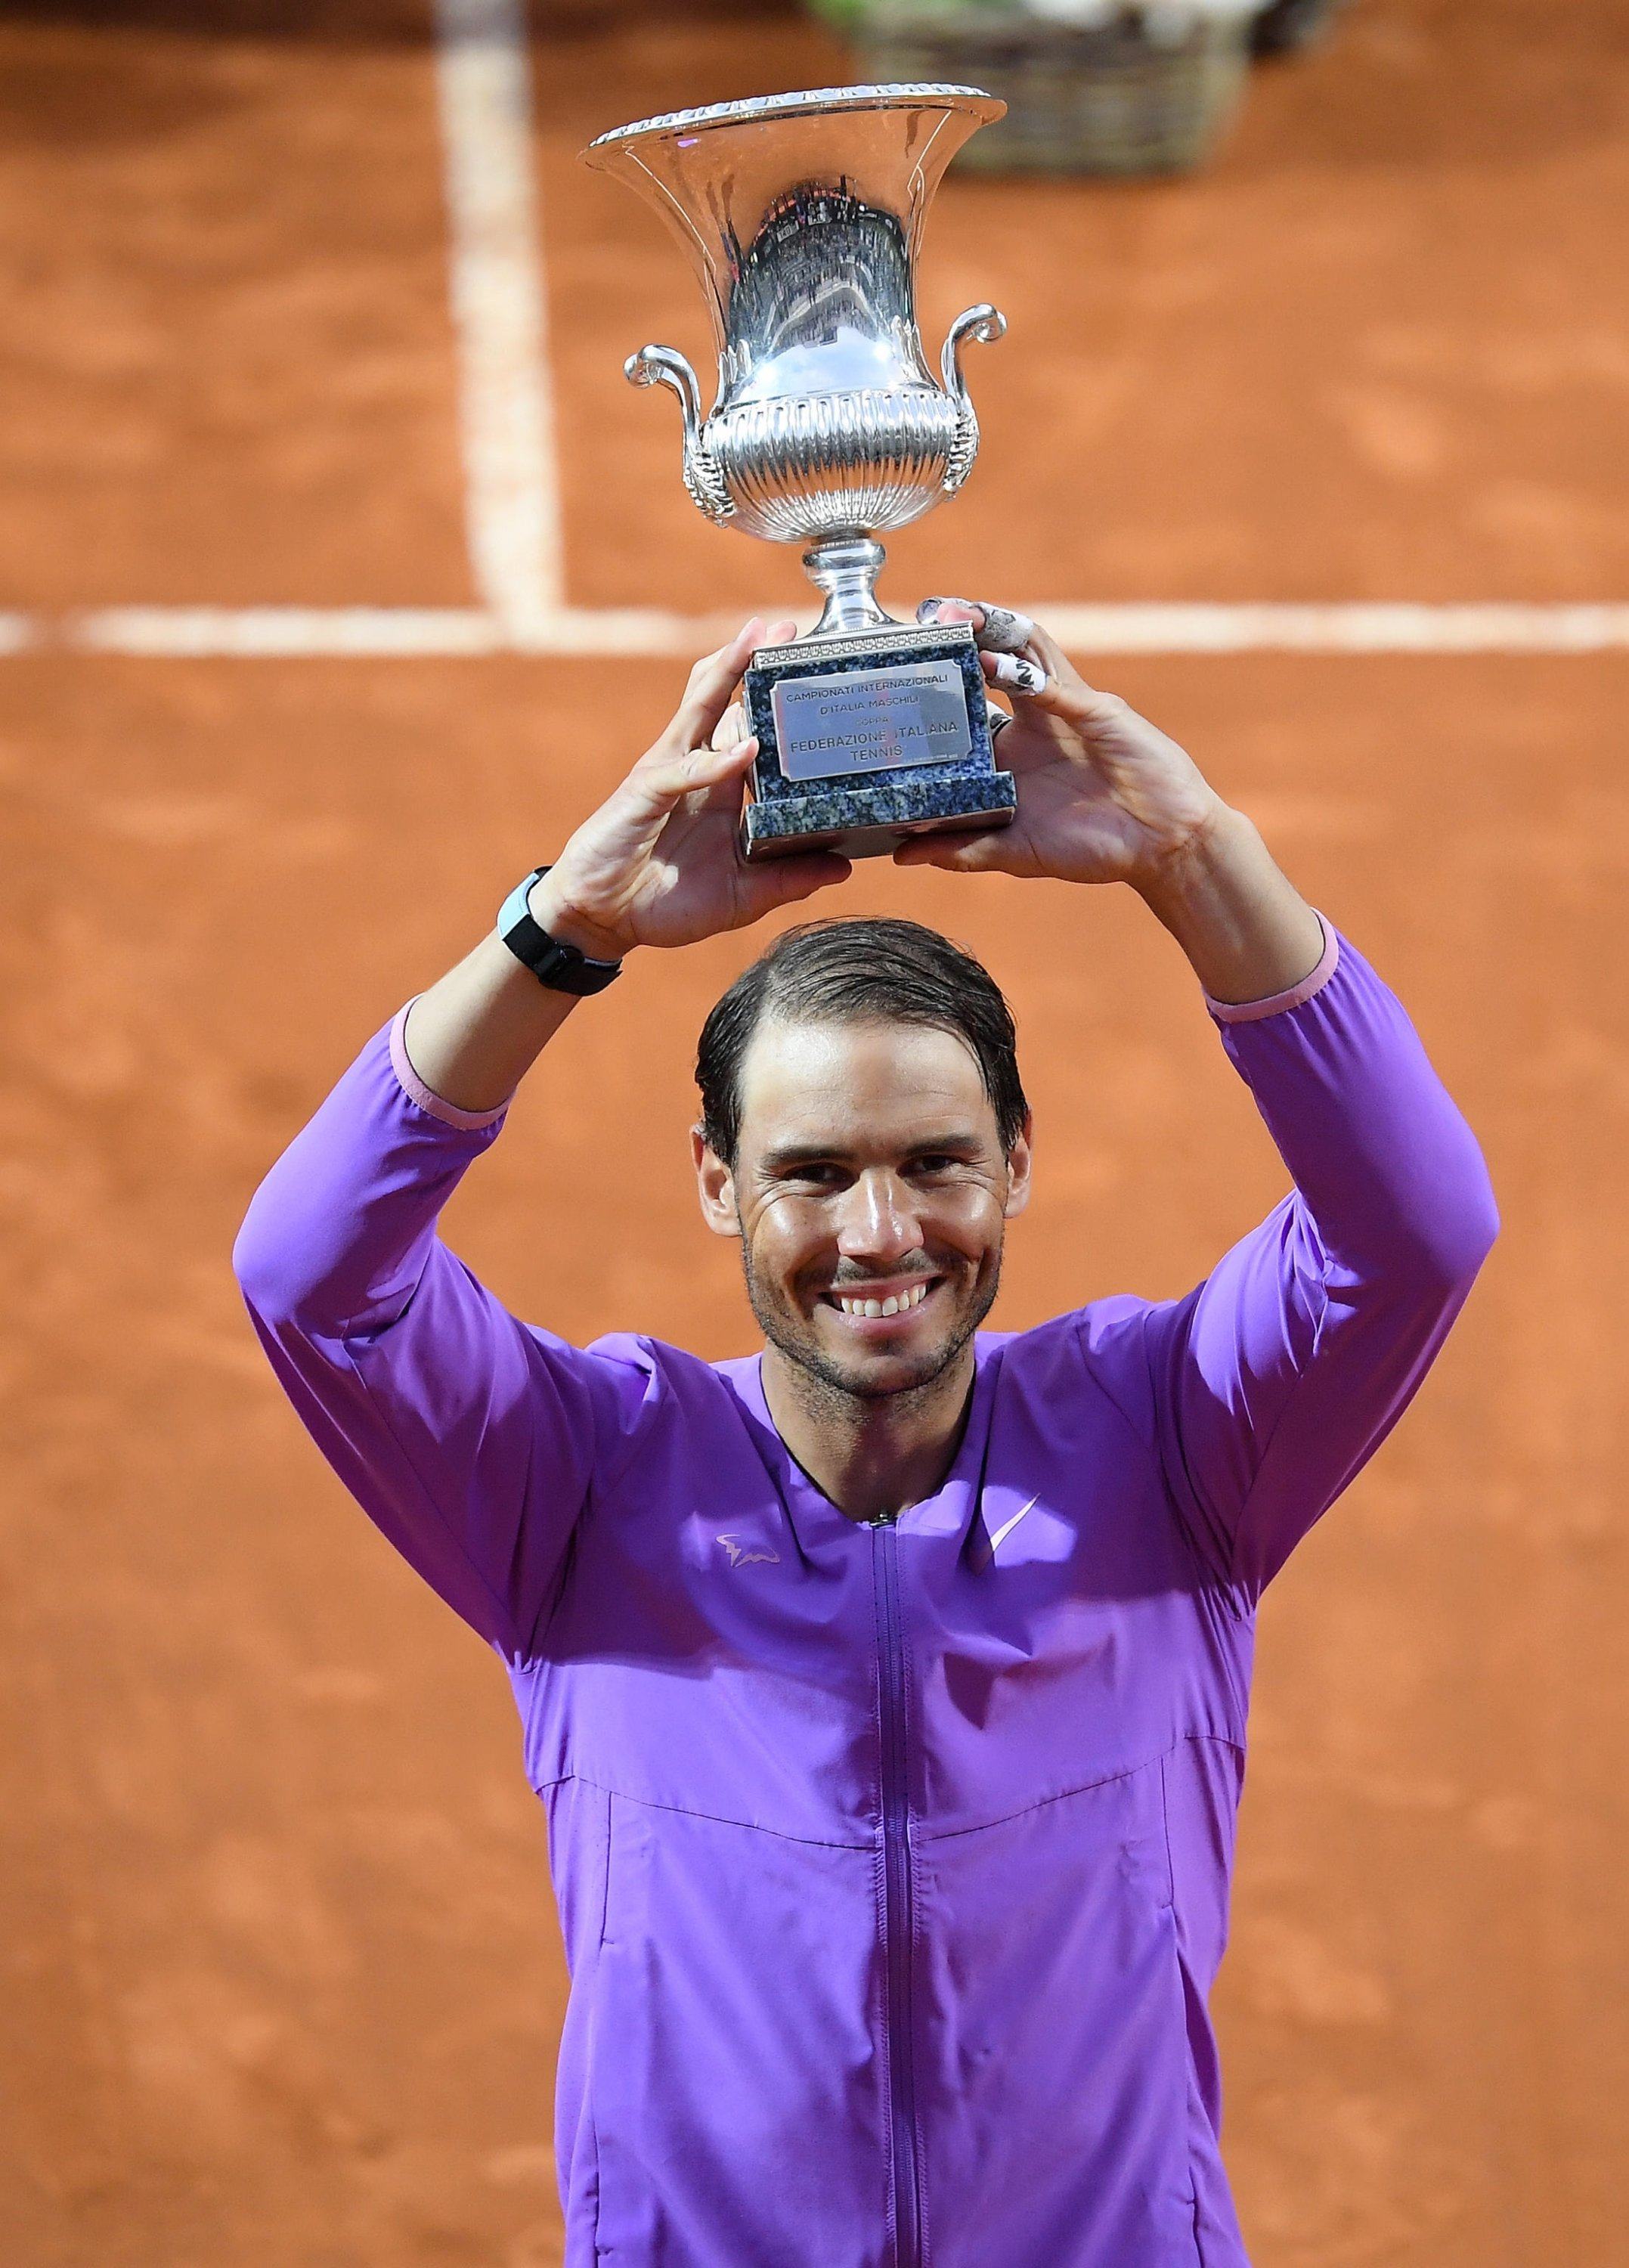 Spain's Rafael Nadal poses with the Italian Open trophy, Rome, Italy, May 16, 2021. (EPA Photo)